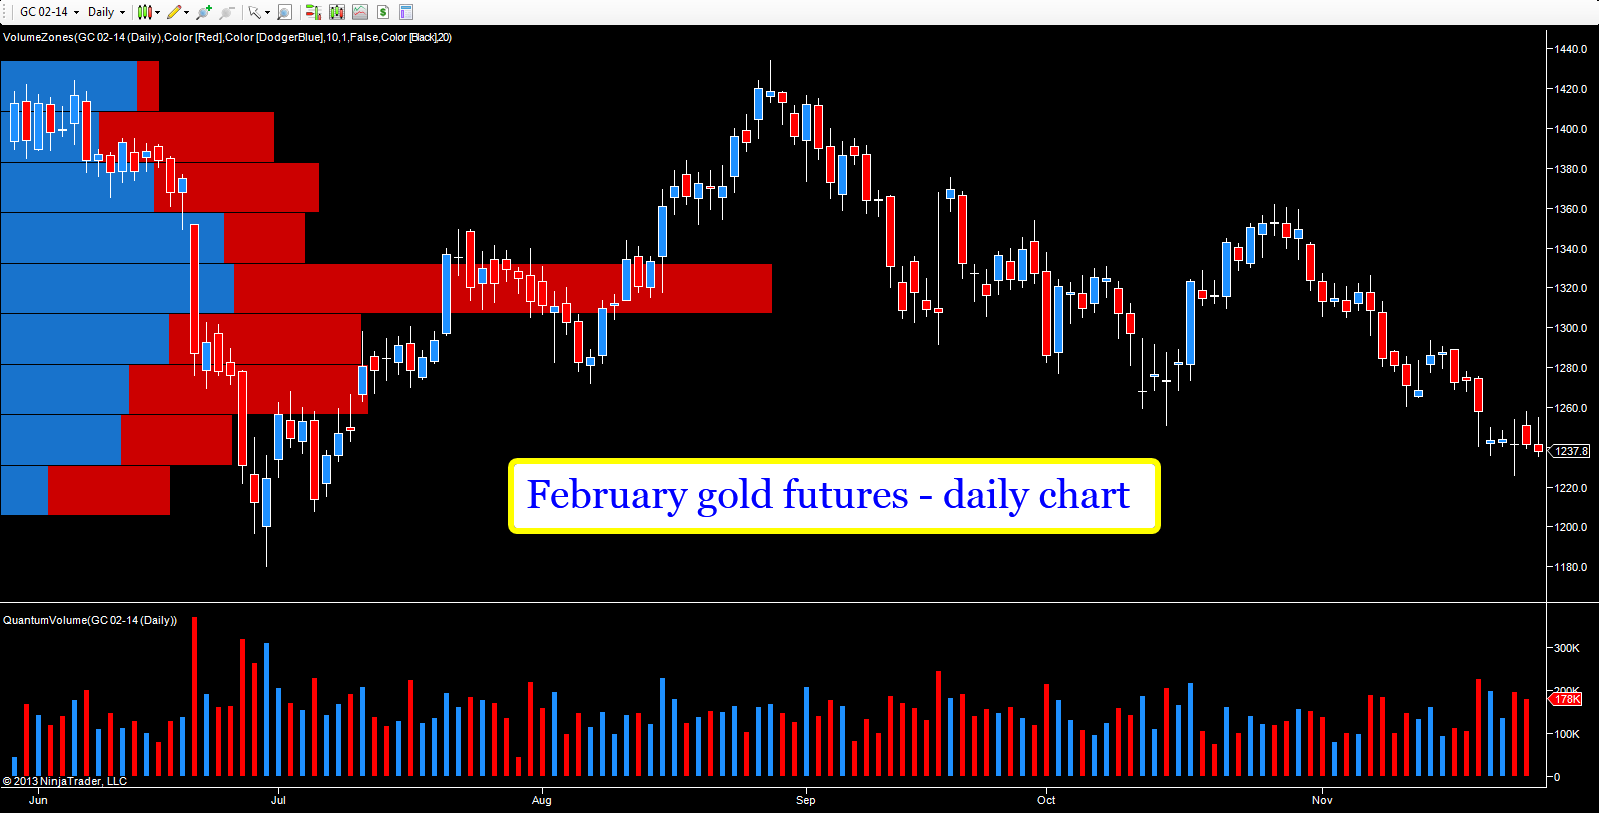 February gold futures - daily chart